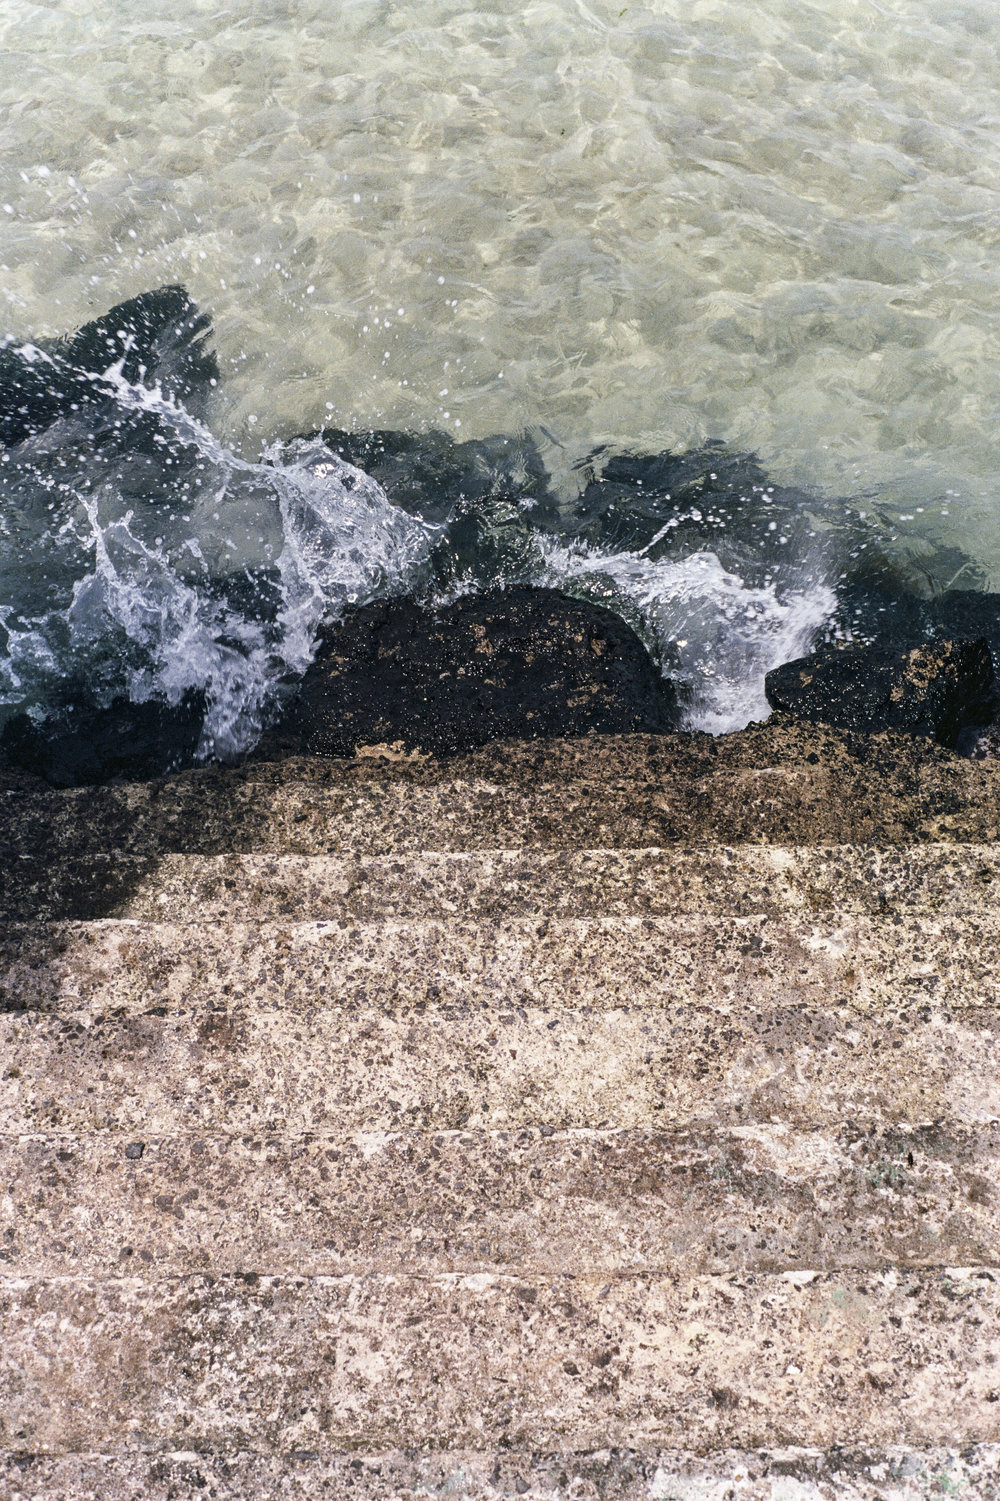 Waves crash on the steps of Cafe Delmoondo at high tide.